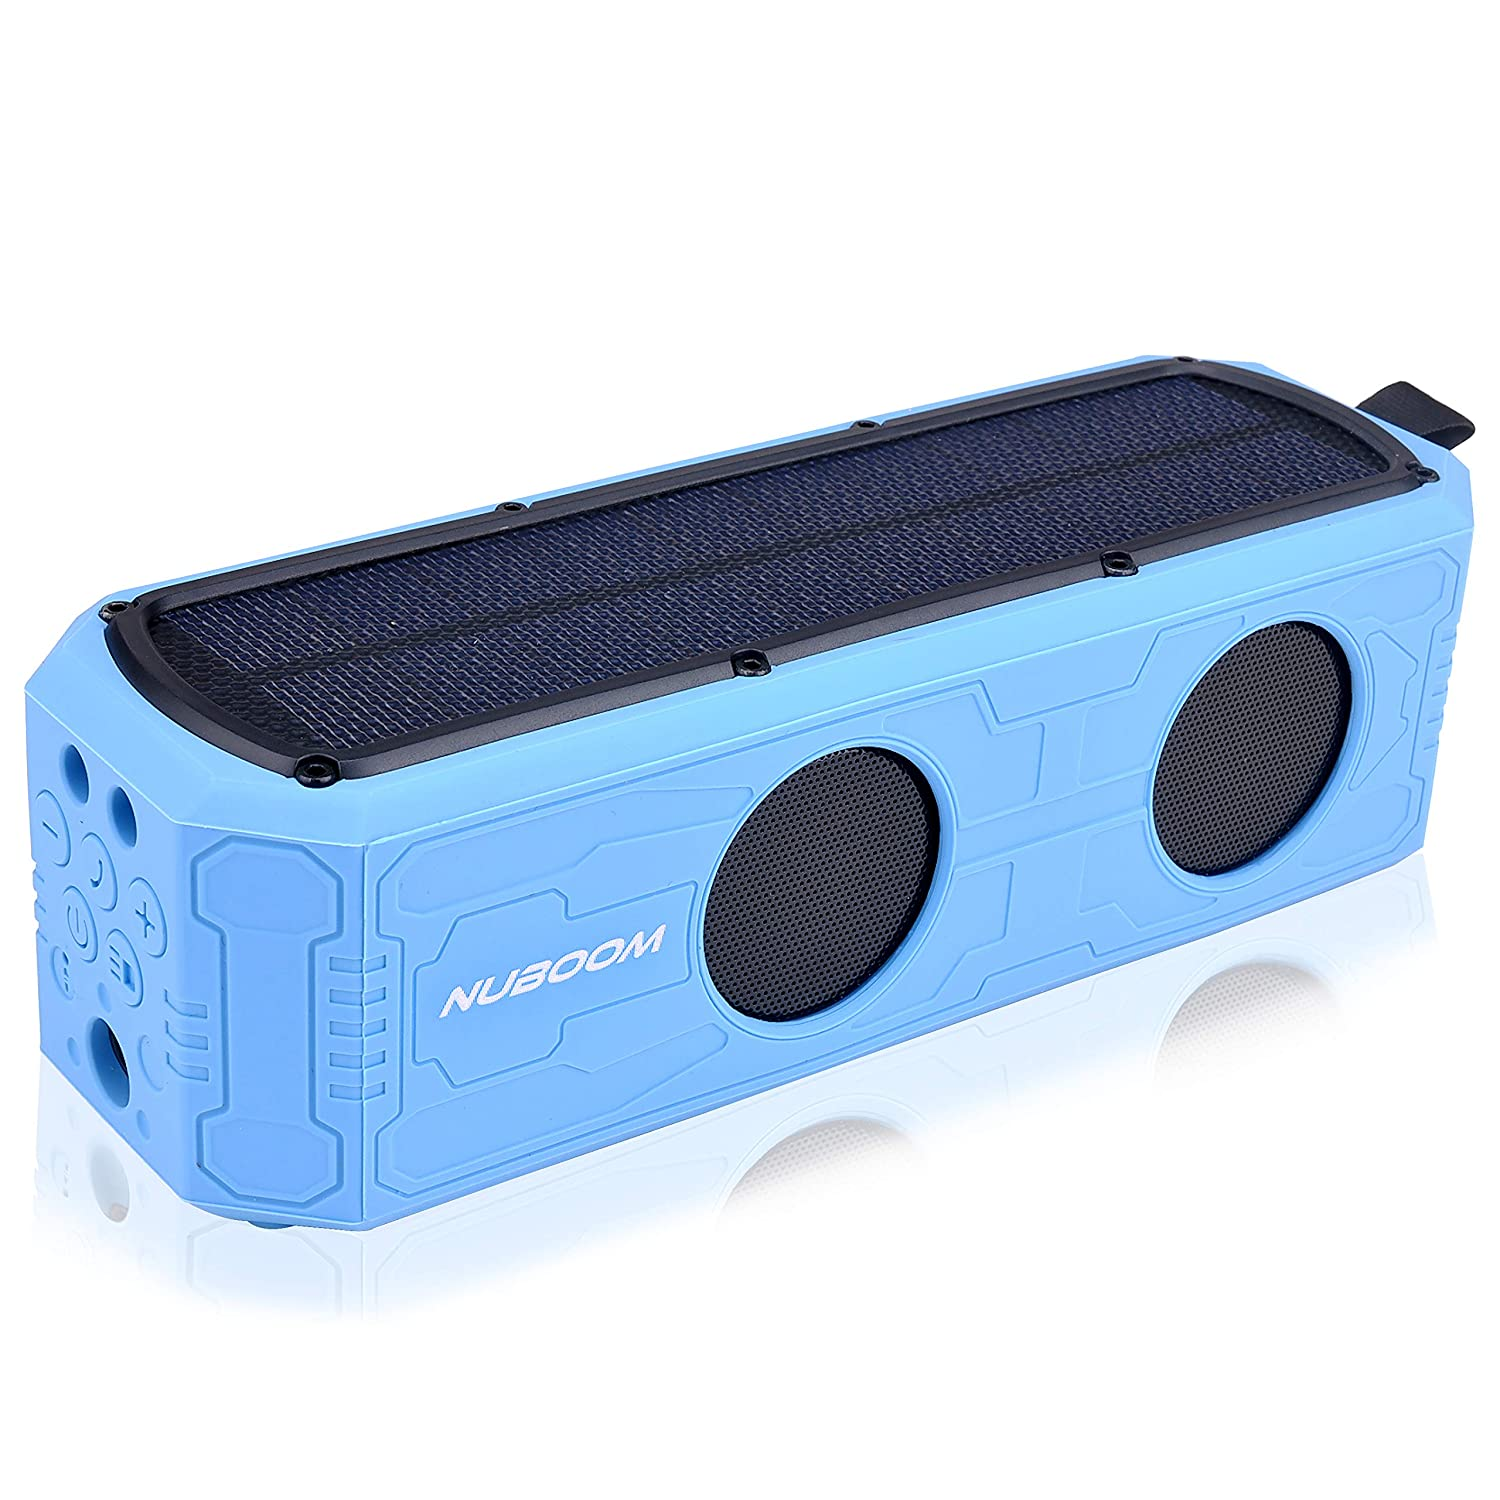 Solar Power Bluetooth Speaker Nuboom Outdoor w. 55+ Hours Playtime, 10W Stereo Subwoofer Bass 4400mAh Power Bank MicroUSB/Solar Charged IPX5 Splashproof and Bluetooth 4.0 Connection (Surface Black) NuVending bluetooth power speakers-1